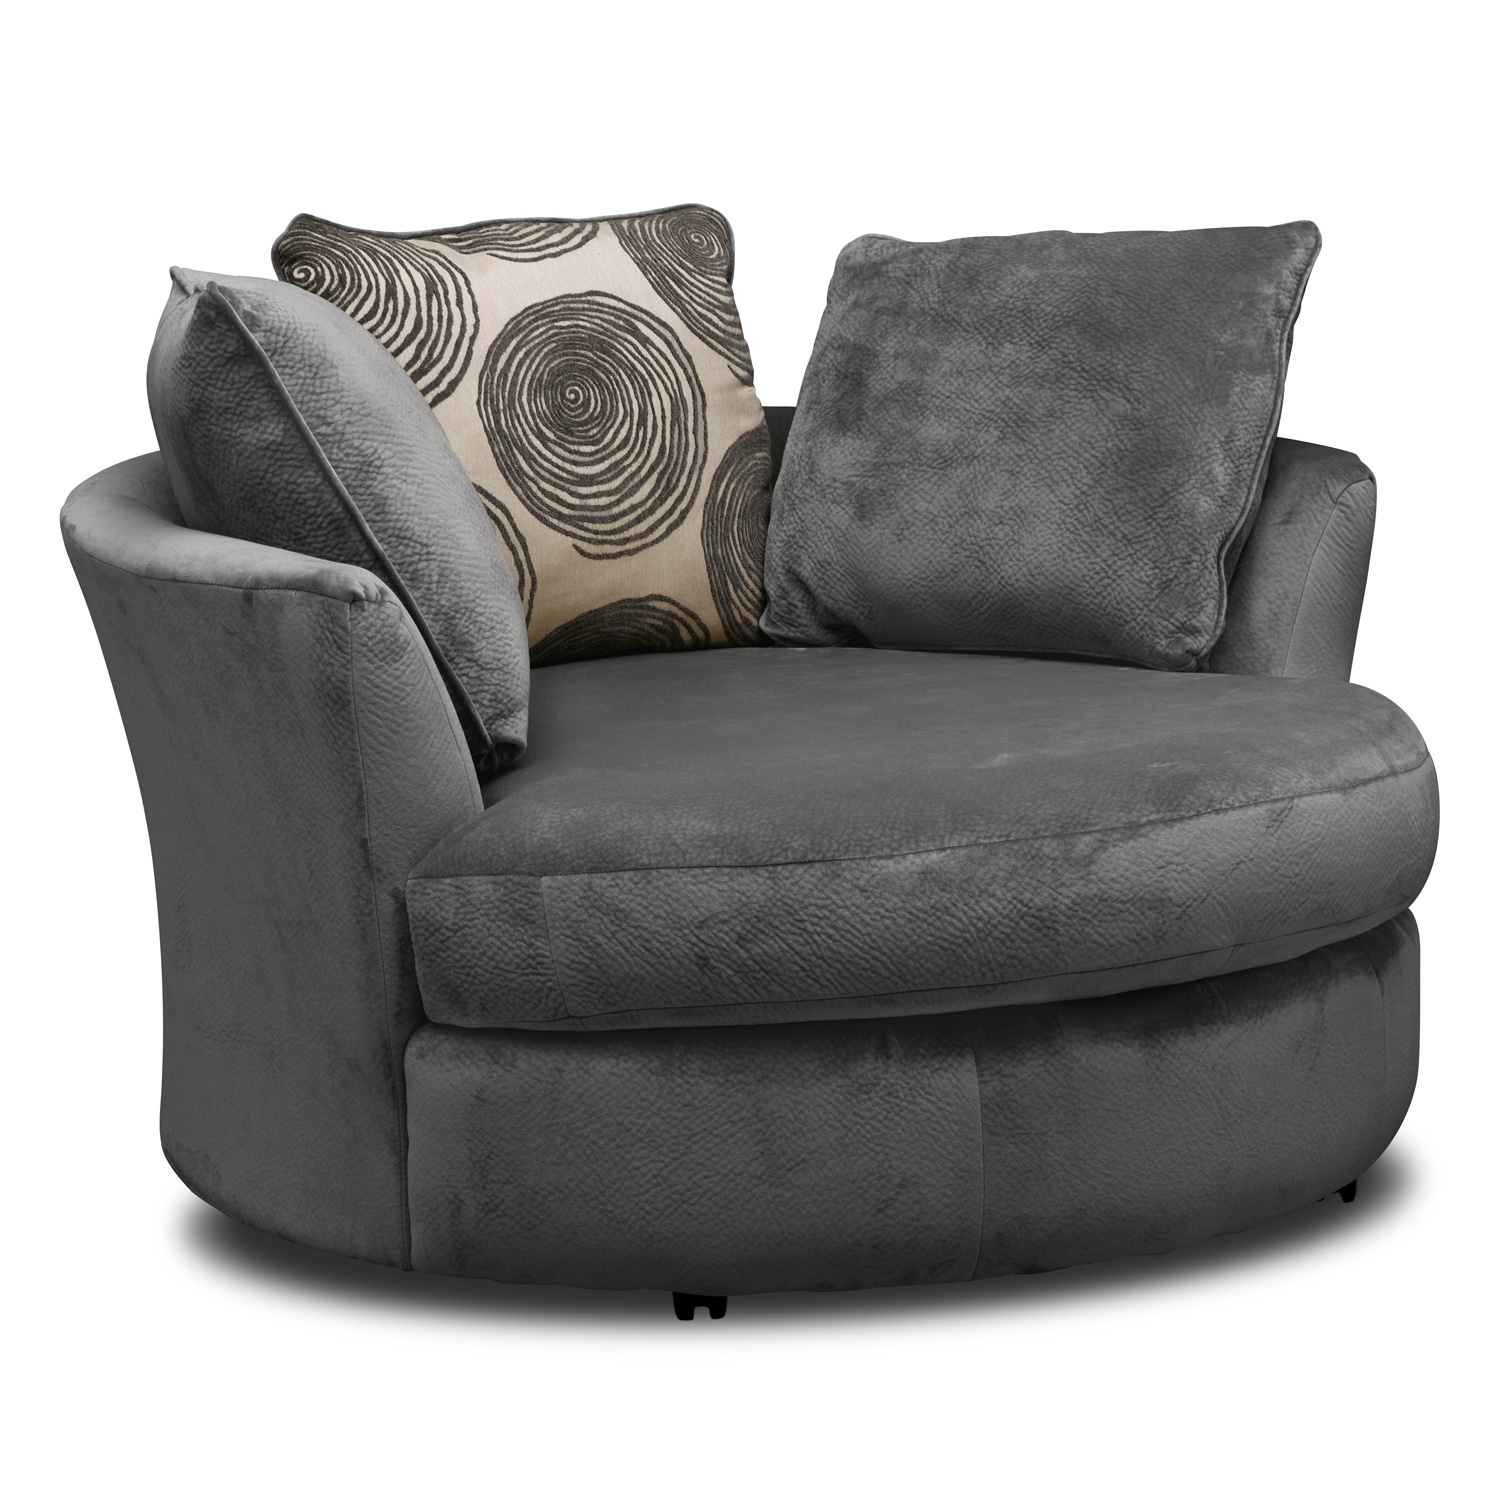 Cordelle Sofa And Swivel Chair Set – Gray | American Signature Furniture With Sofas With Swivel Chair (View 5 of 10)